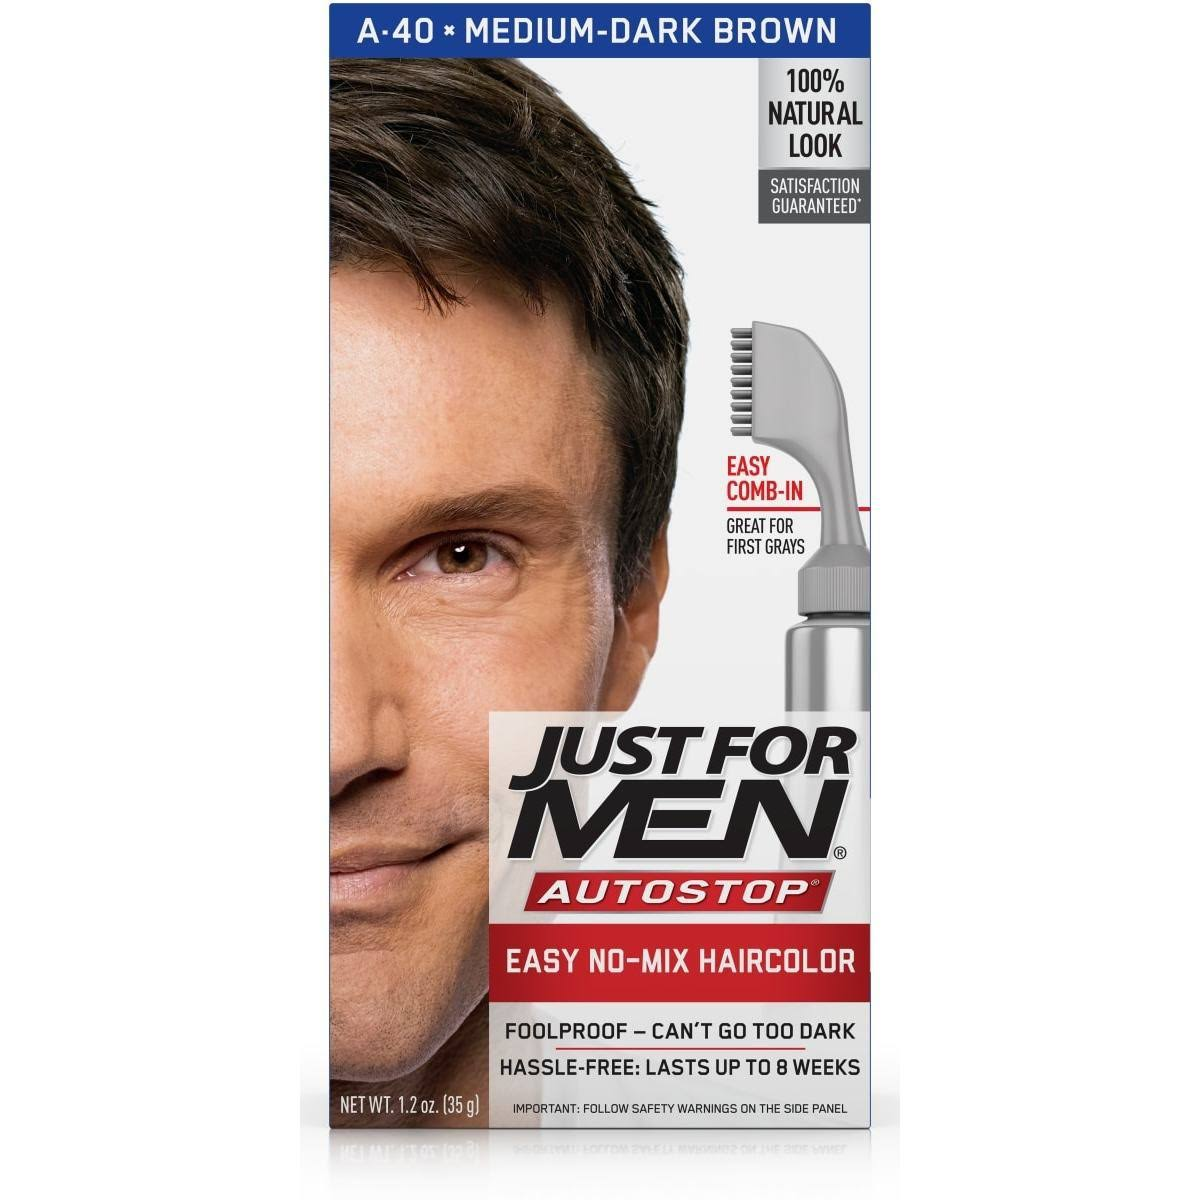 Just for Men Auto Stop Men's Hair Color - Medium Dark Brown